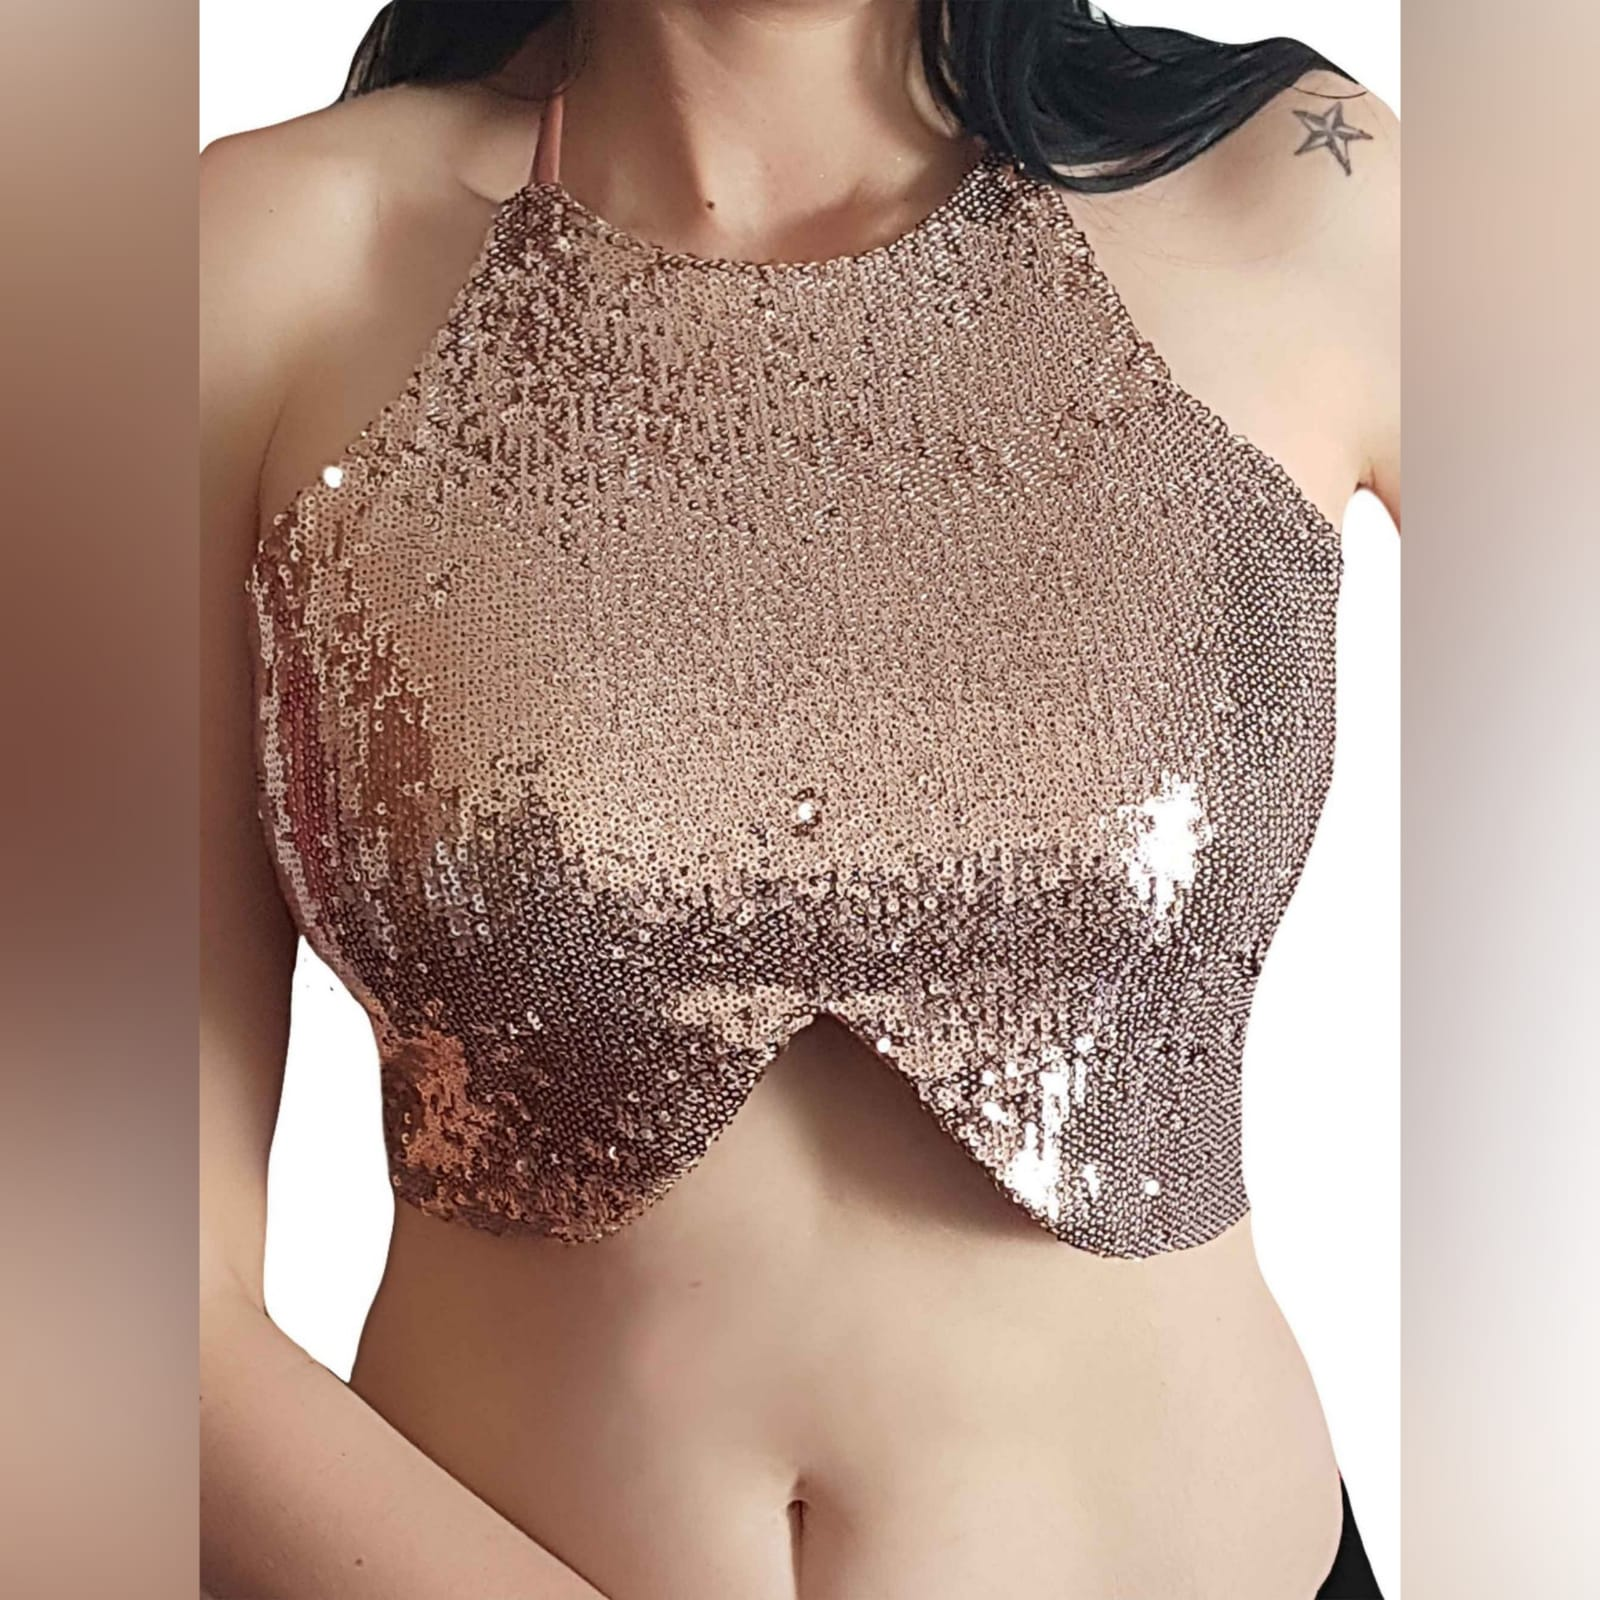 Rose gold sequins sexy top 2 a designer gold top that will make you sparkle when you out having fun. A short top with a high neck design and a rounded hemline. Naked back top with a tie-up design to adjust the way you like. A fun top that can be worn on several occasions. This shiny top is fun wear and great as a party top.